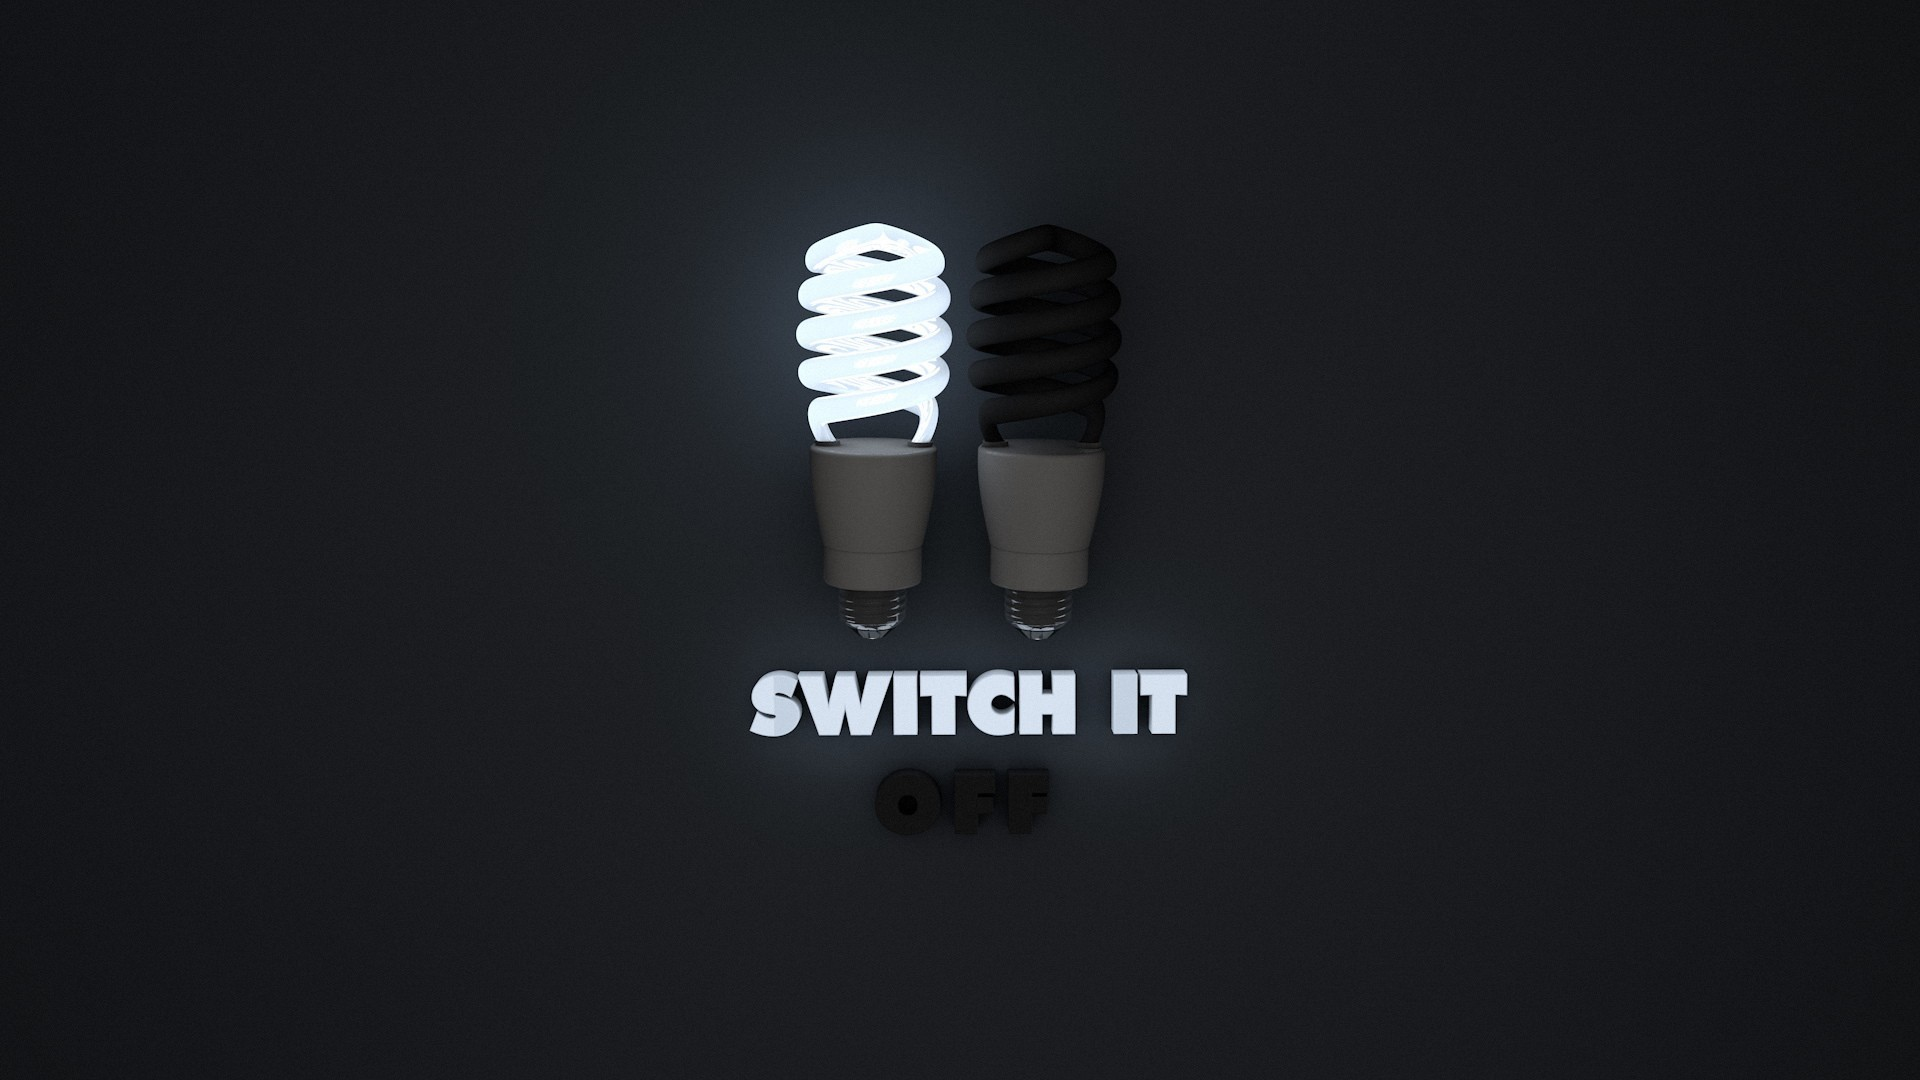 1920x1080 Bulbs simple background wallpaper